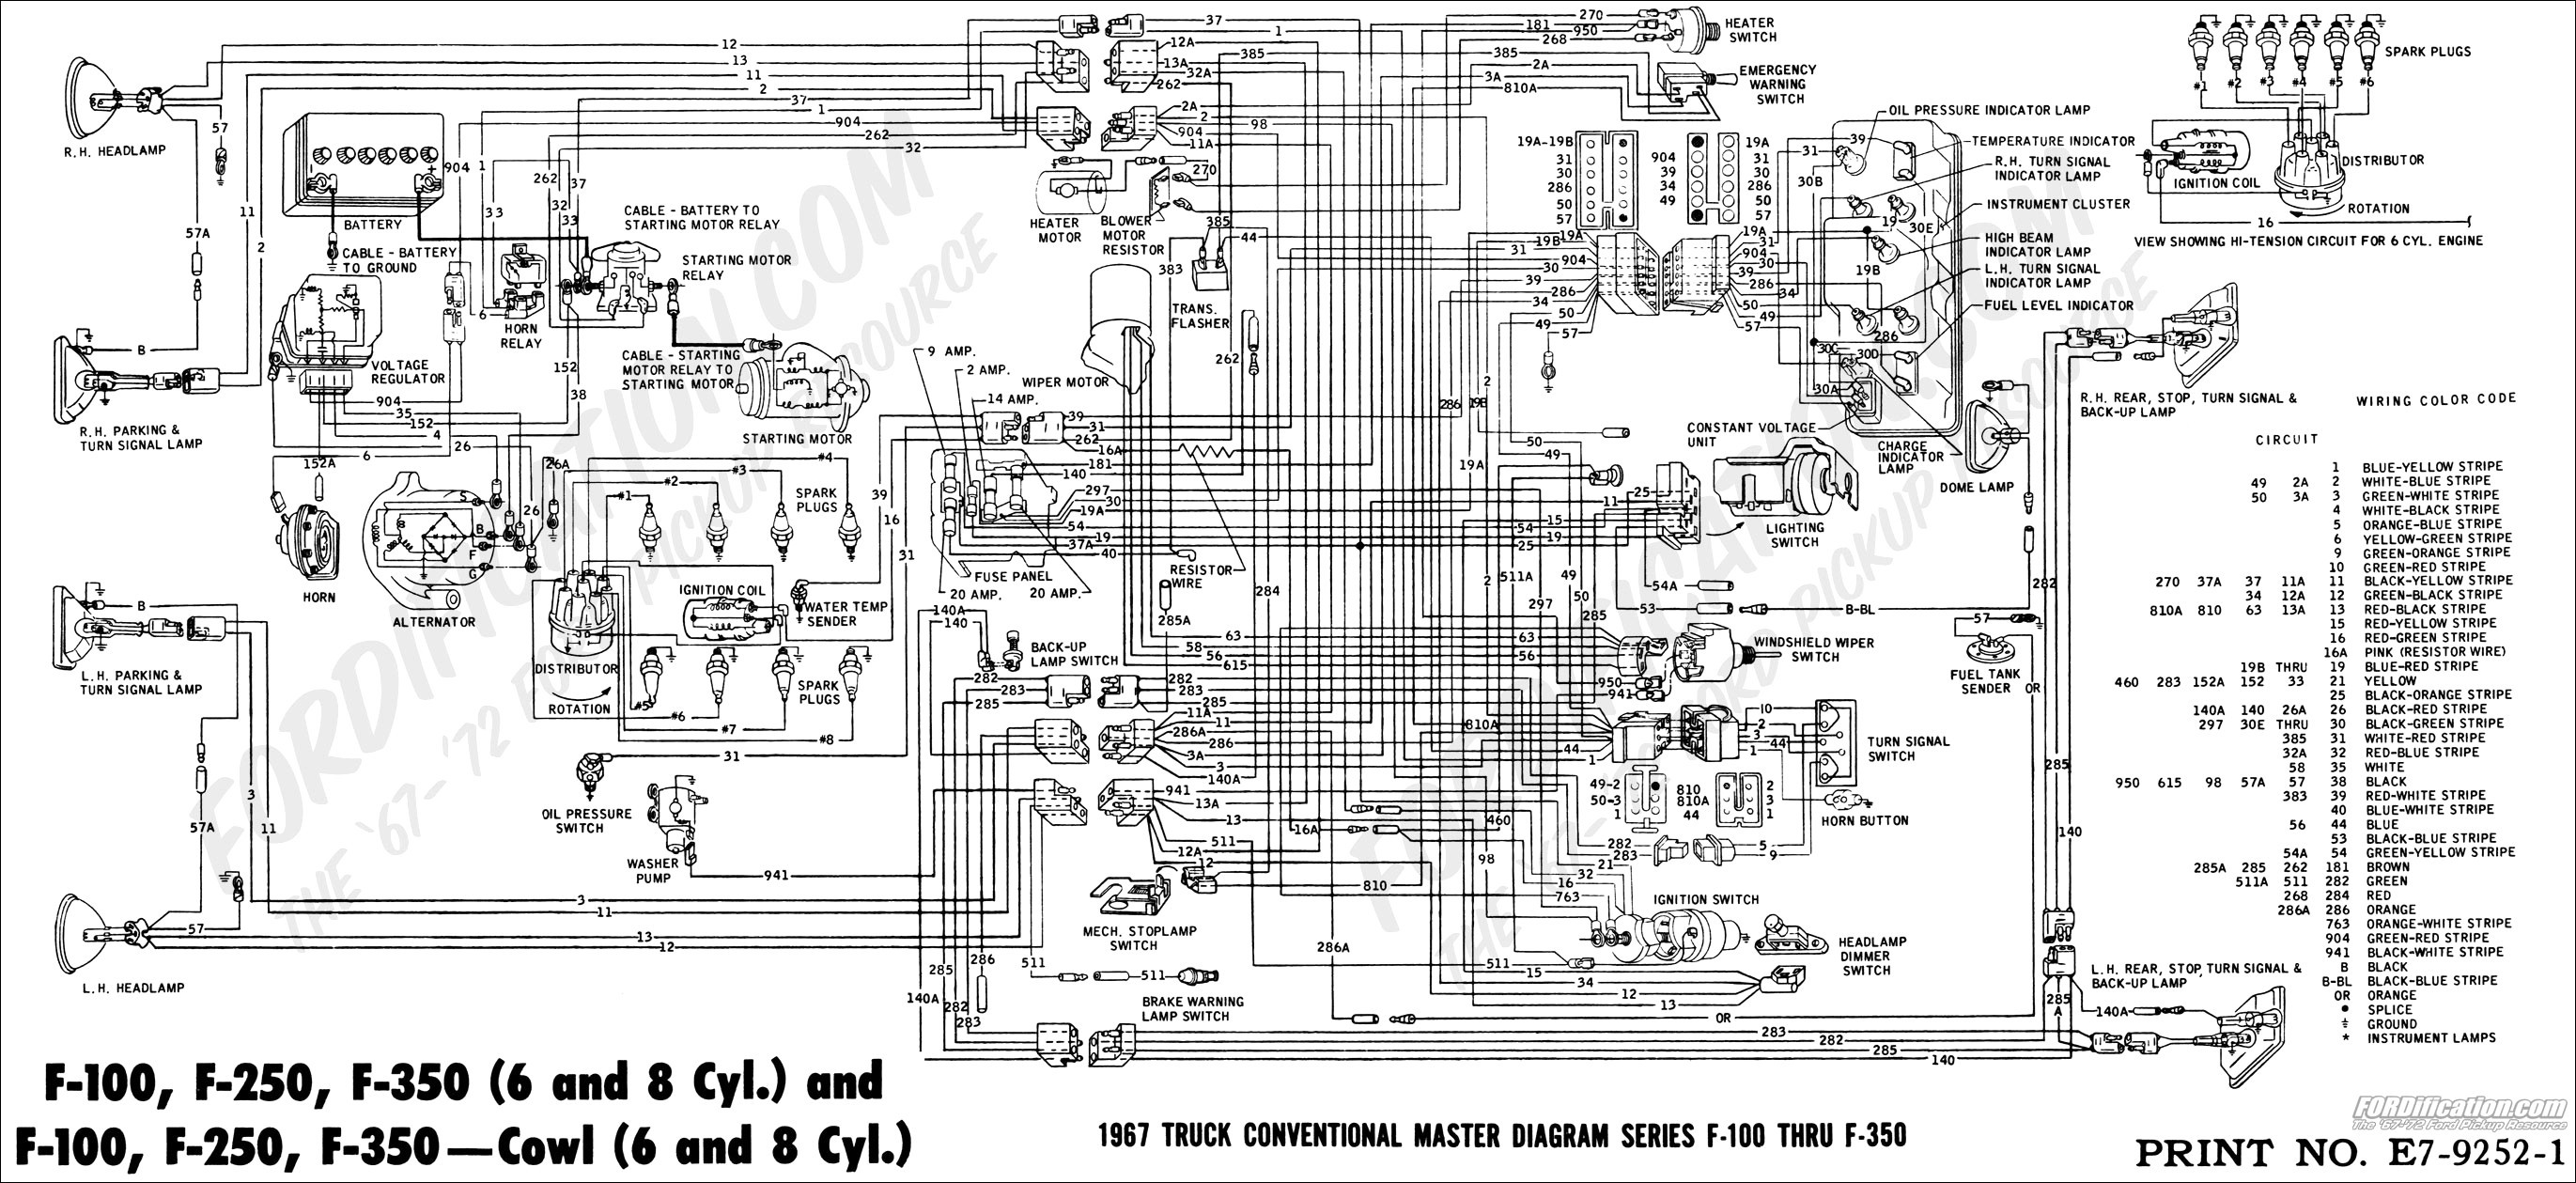 2001 ford 5 4 engine diagram smart wiring diagrams u2022 rh emgsolutions co  Ford Lightning Engine Diagram 2003 ford f 150 engines diagram v6